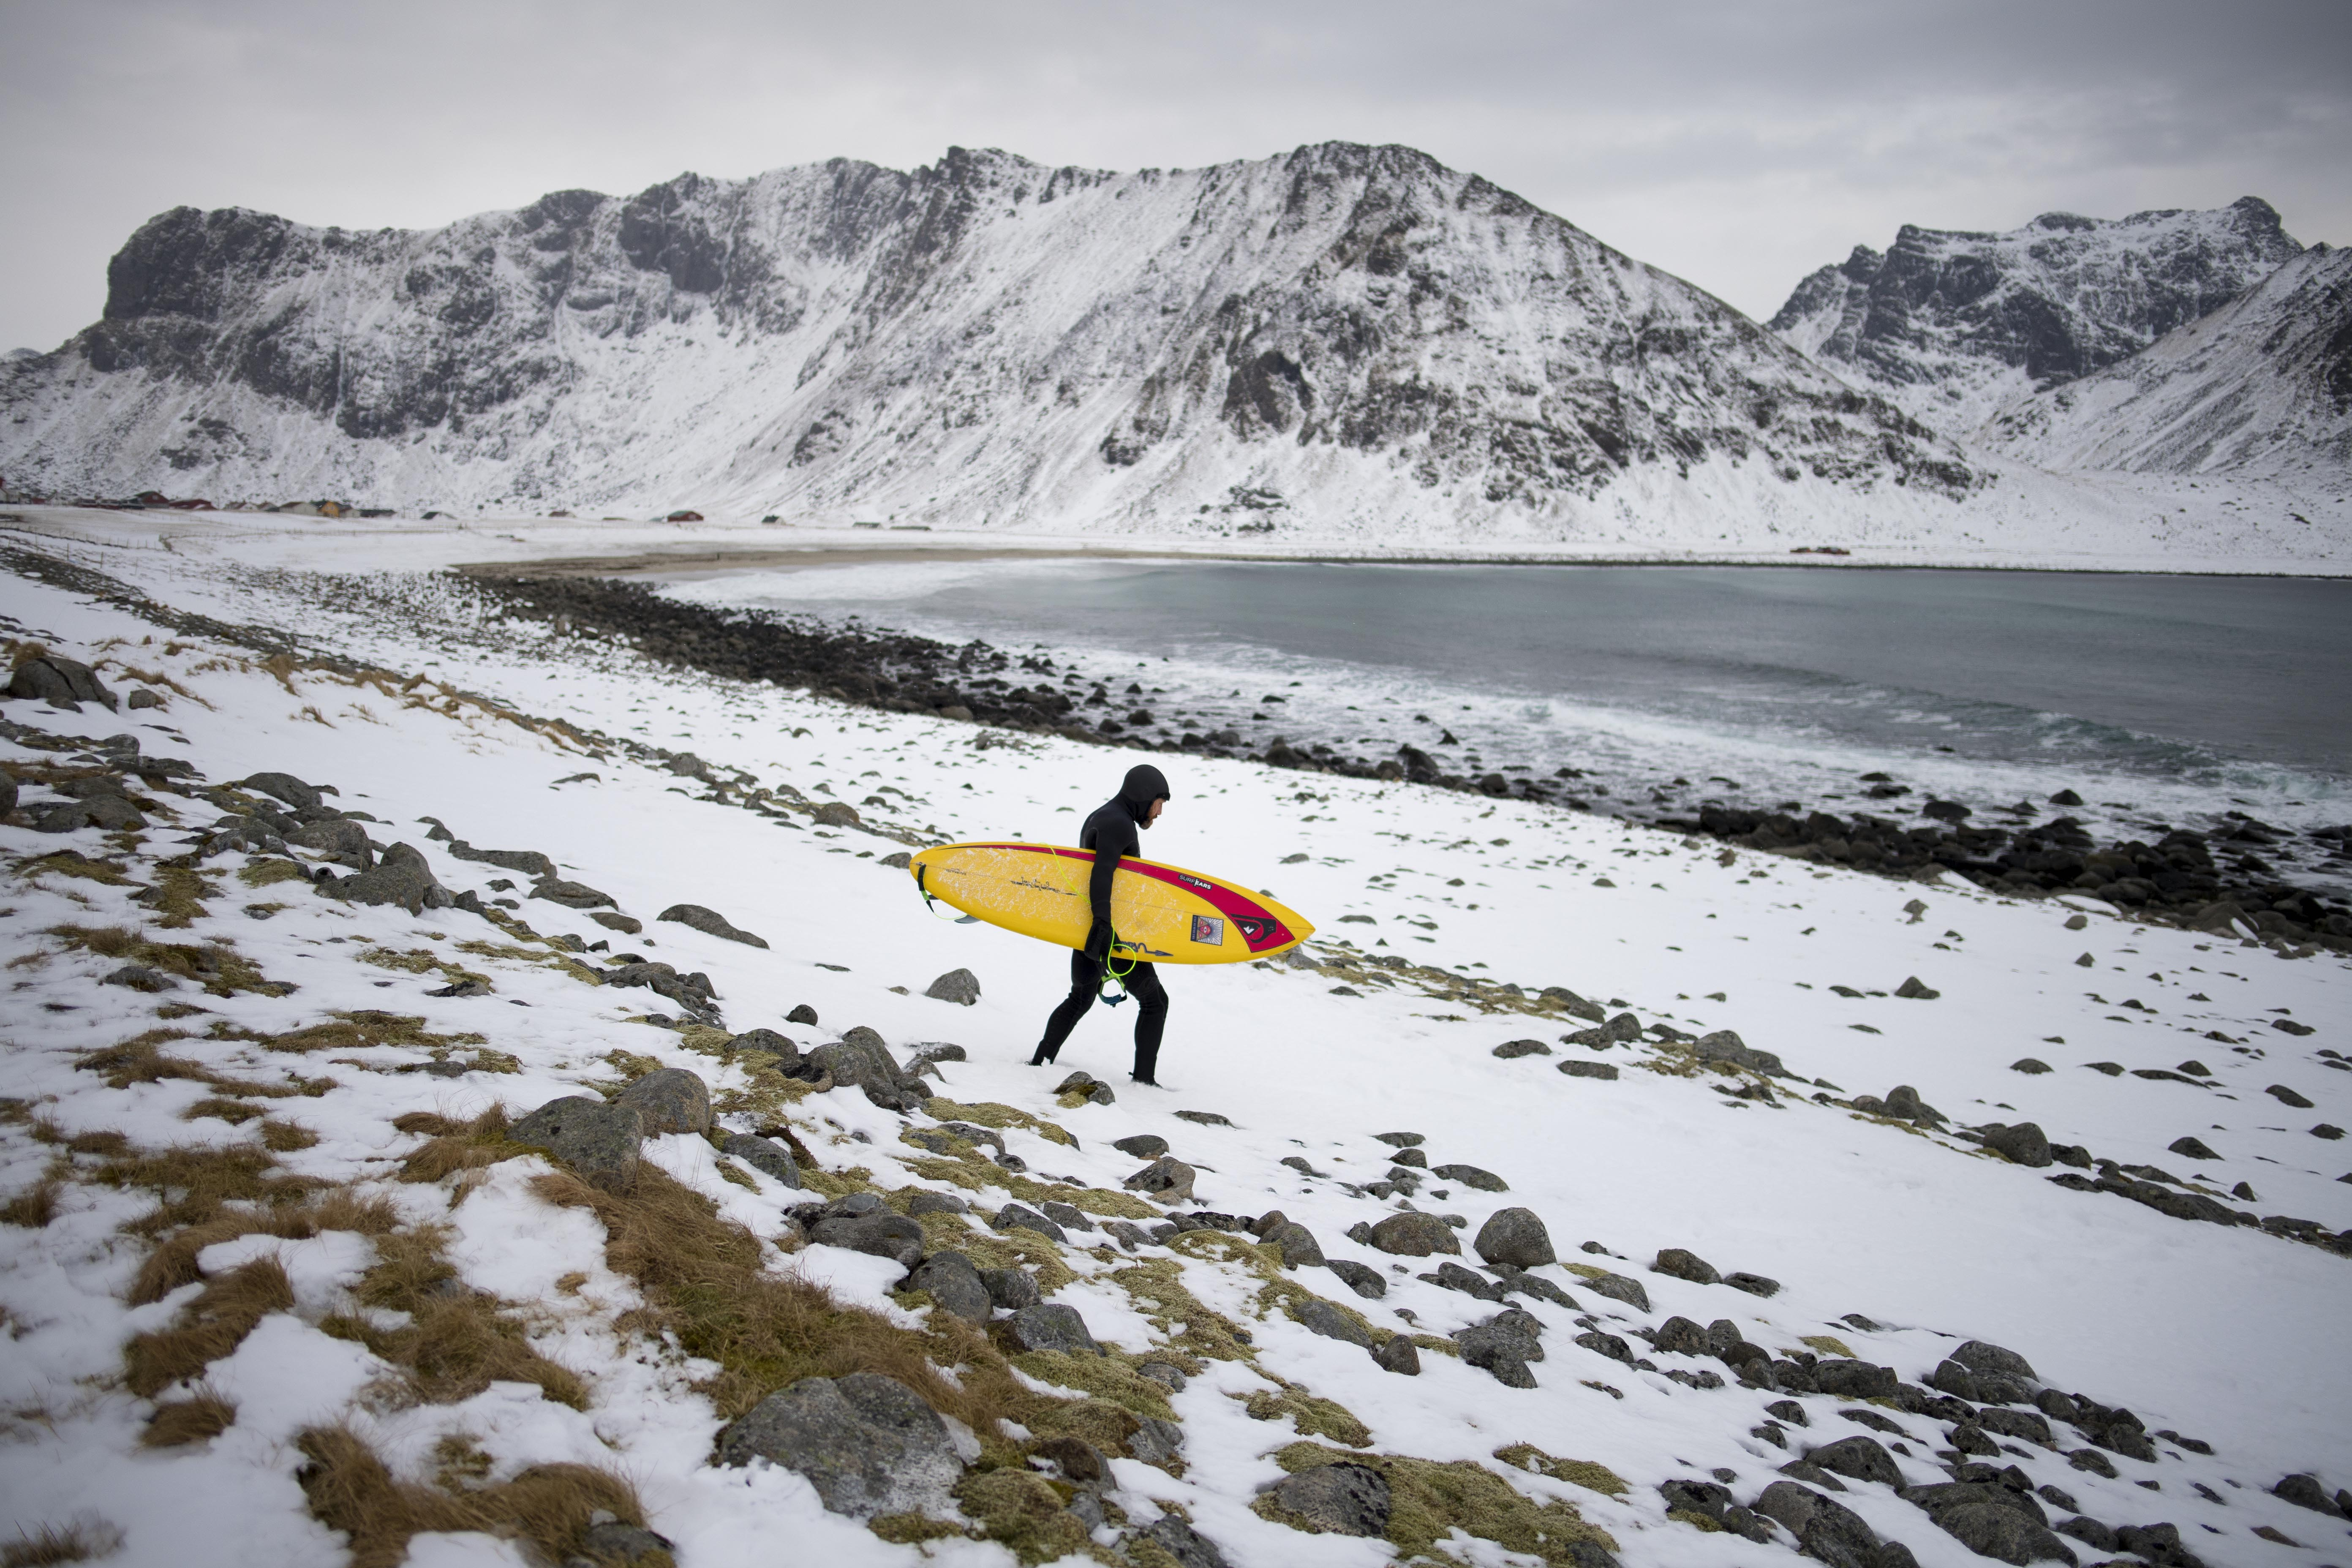 Tom Carroll , Lofoten, March 2017